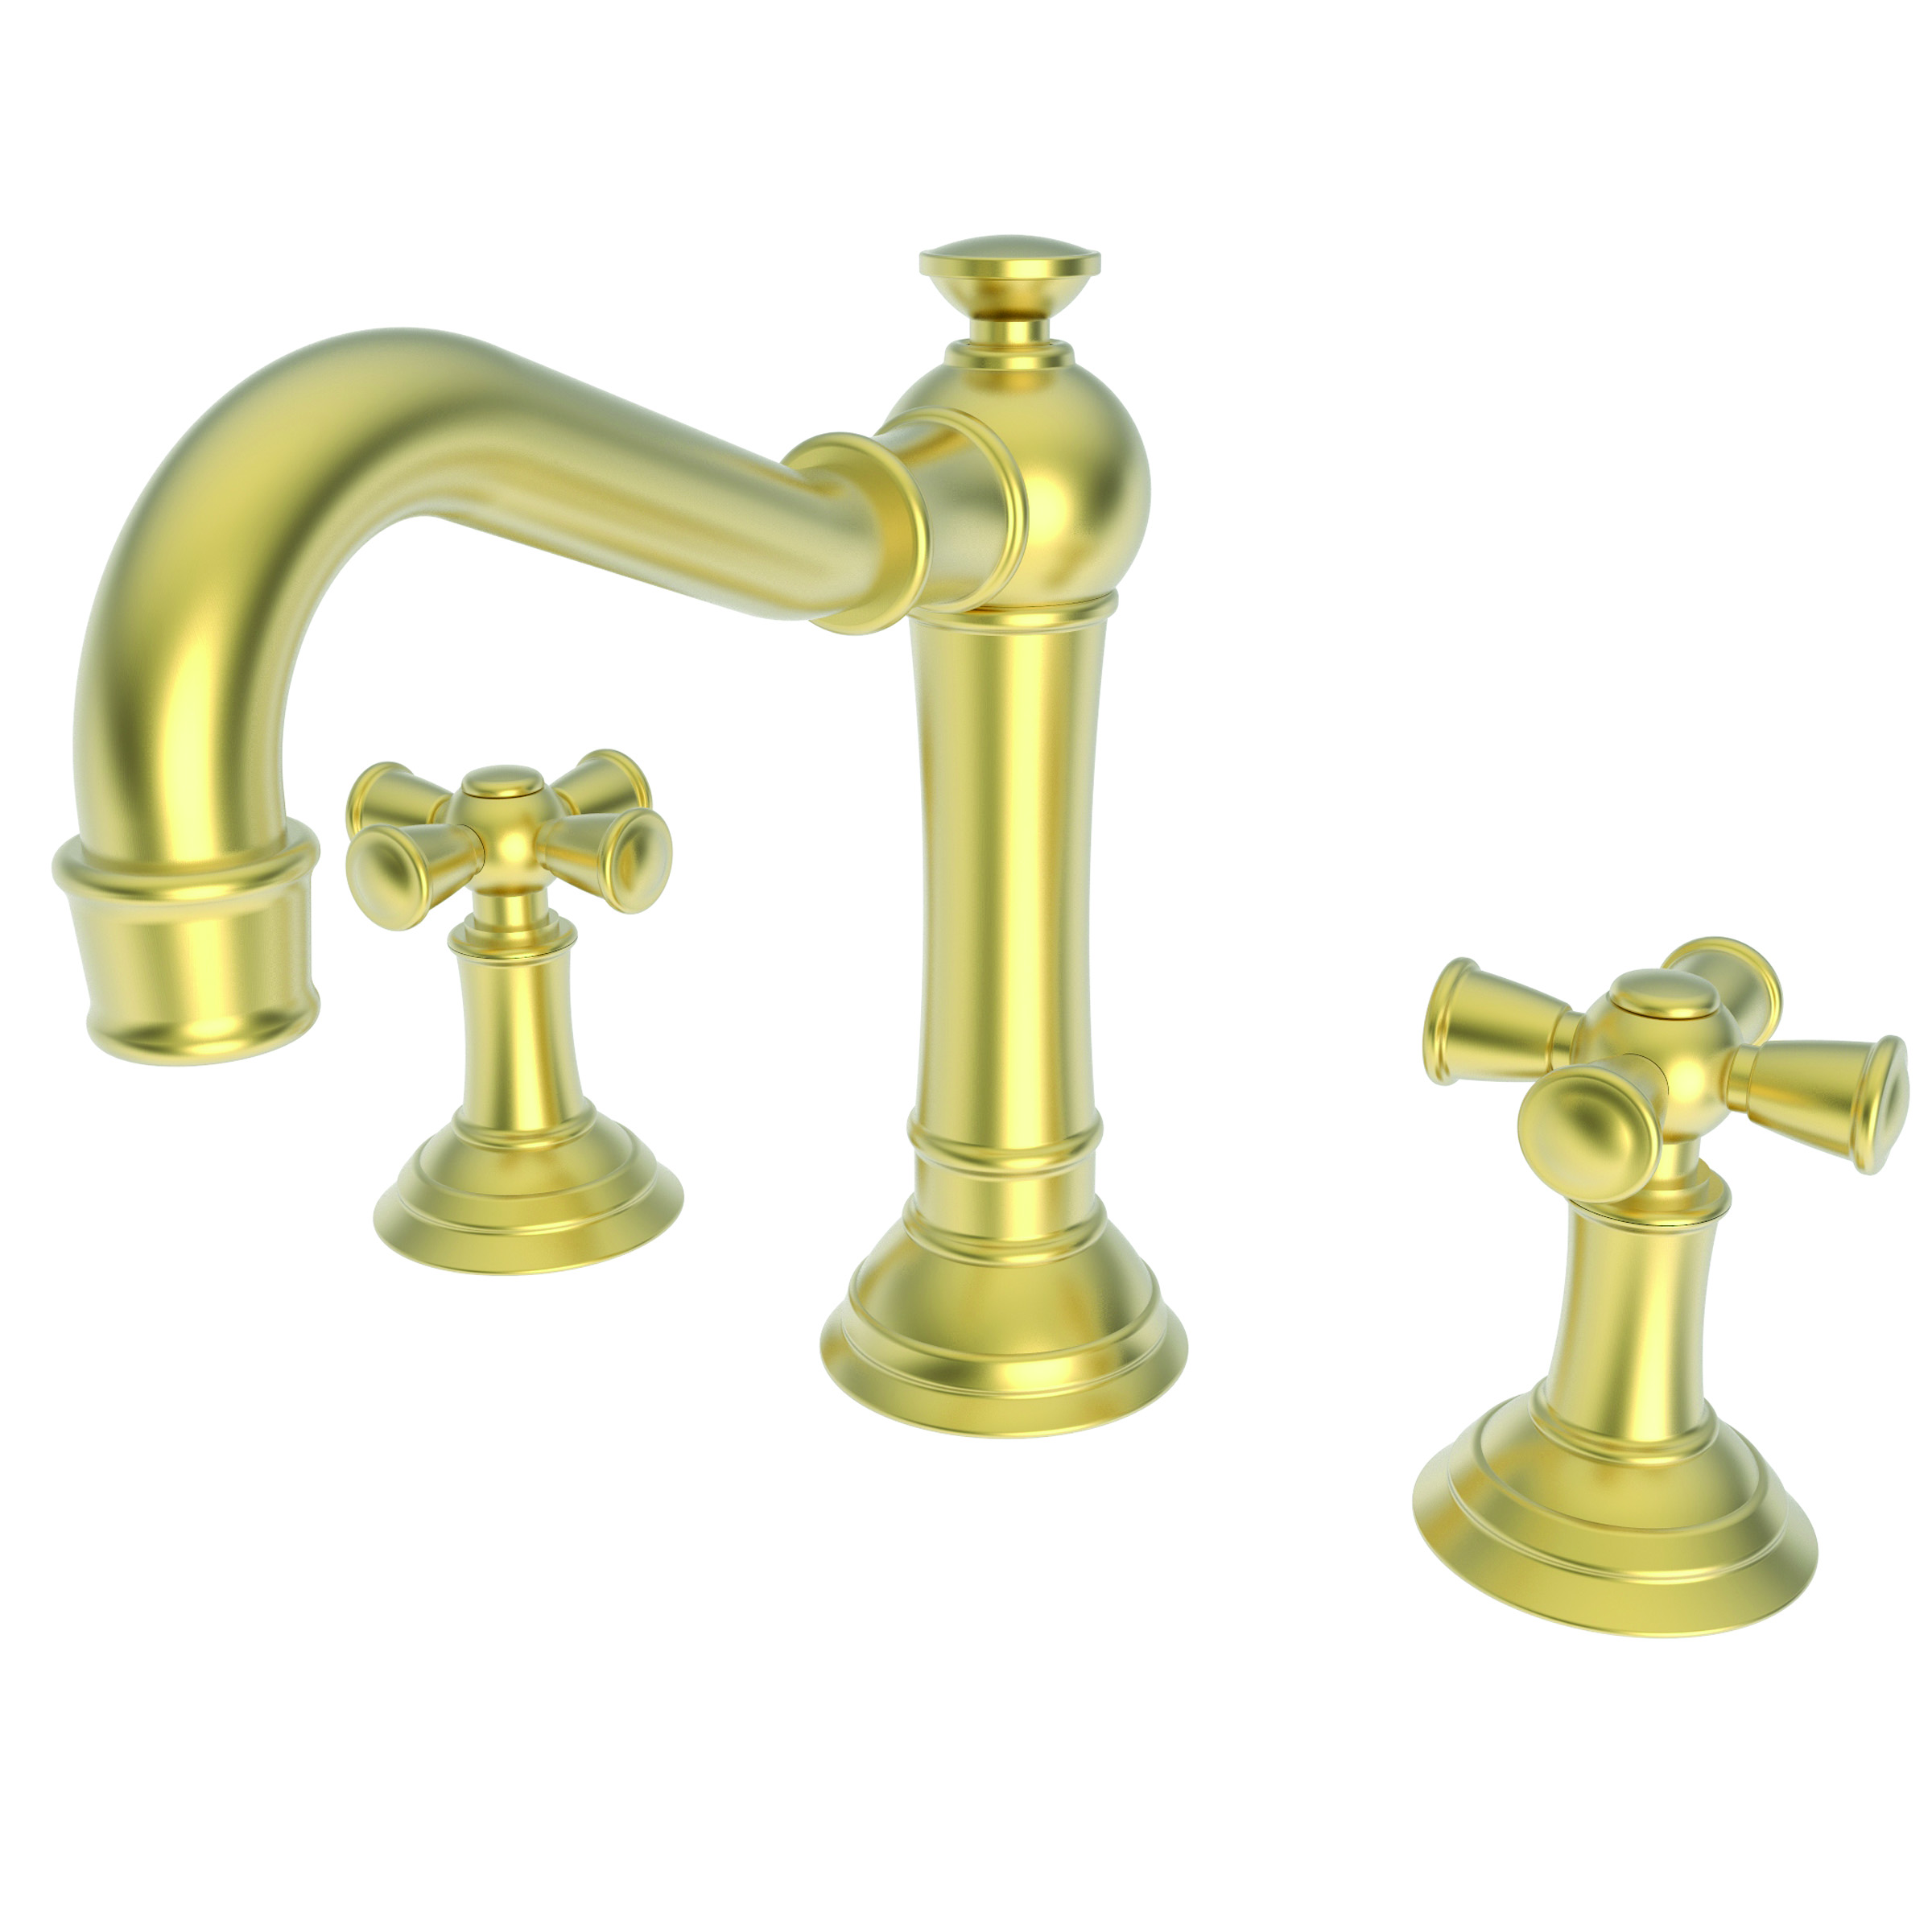 Newport brass 2460 widespread lavatory faucet country base cross handles newport brass faucets Newport brass bathroom faucets